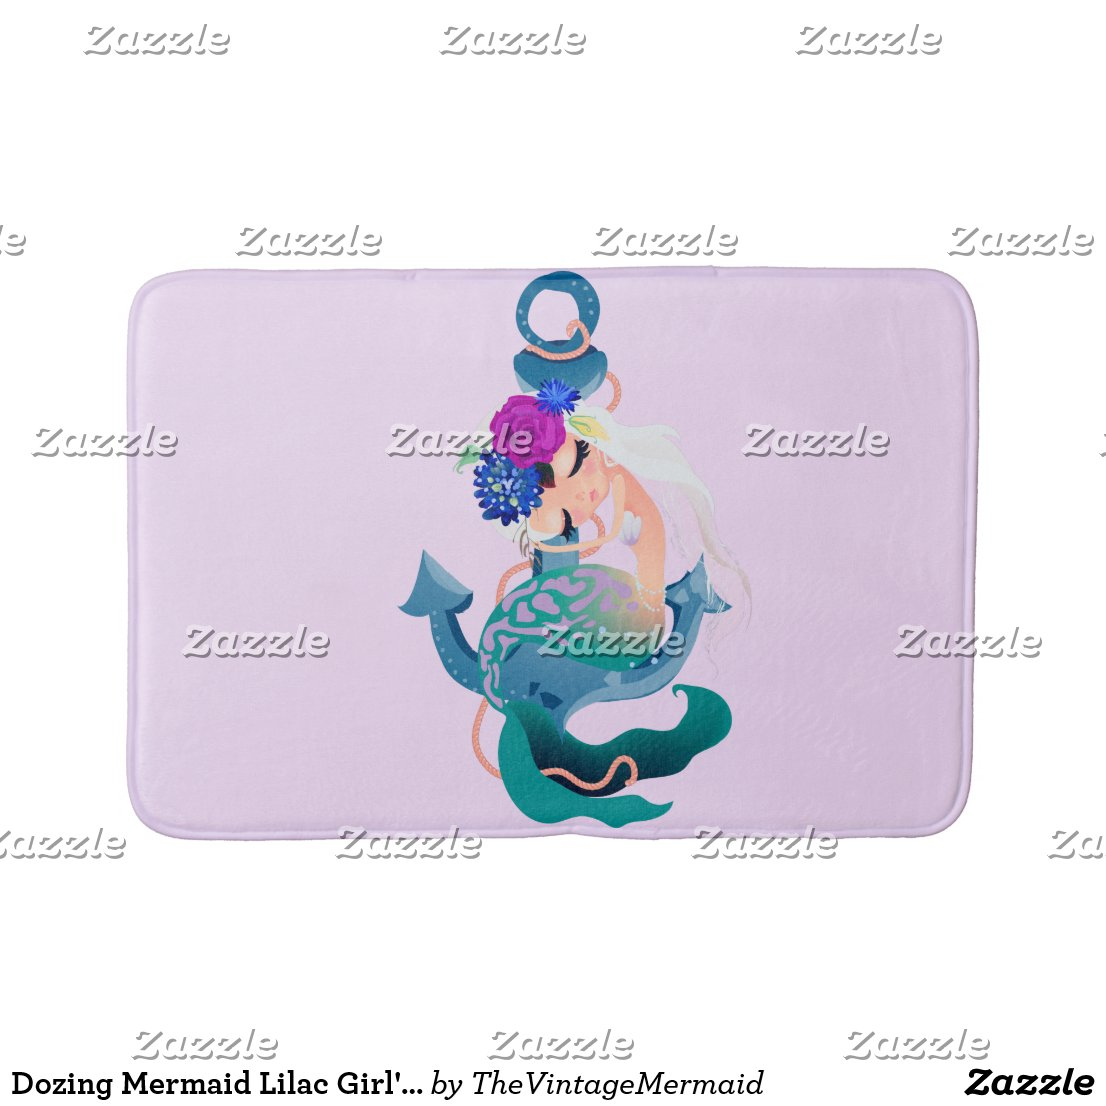 Dozing Mermaid Lilac Girl's Bath Mat